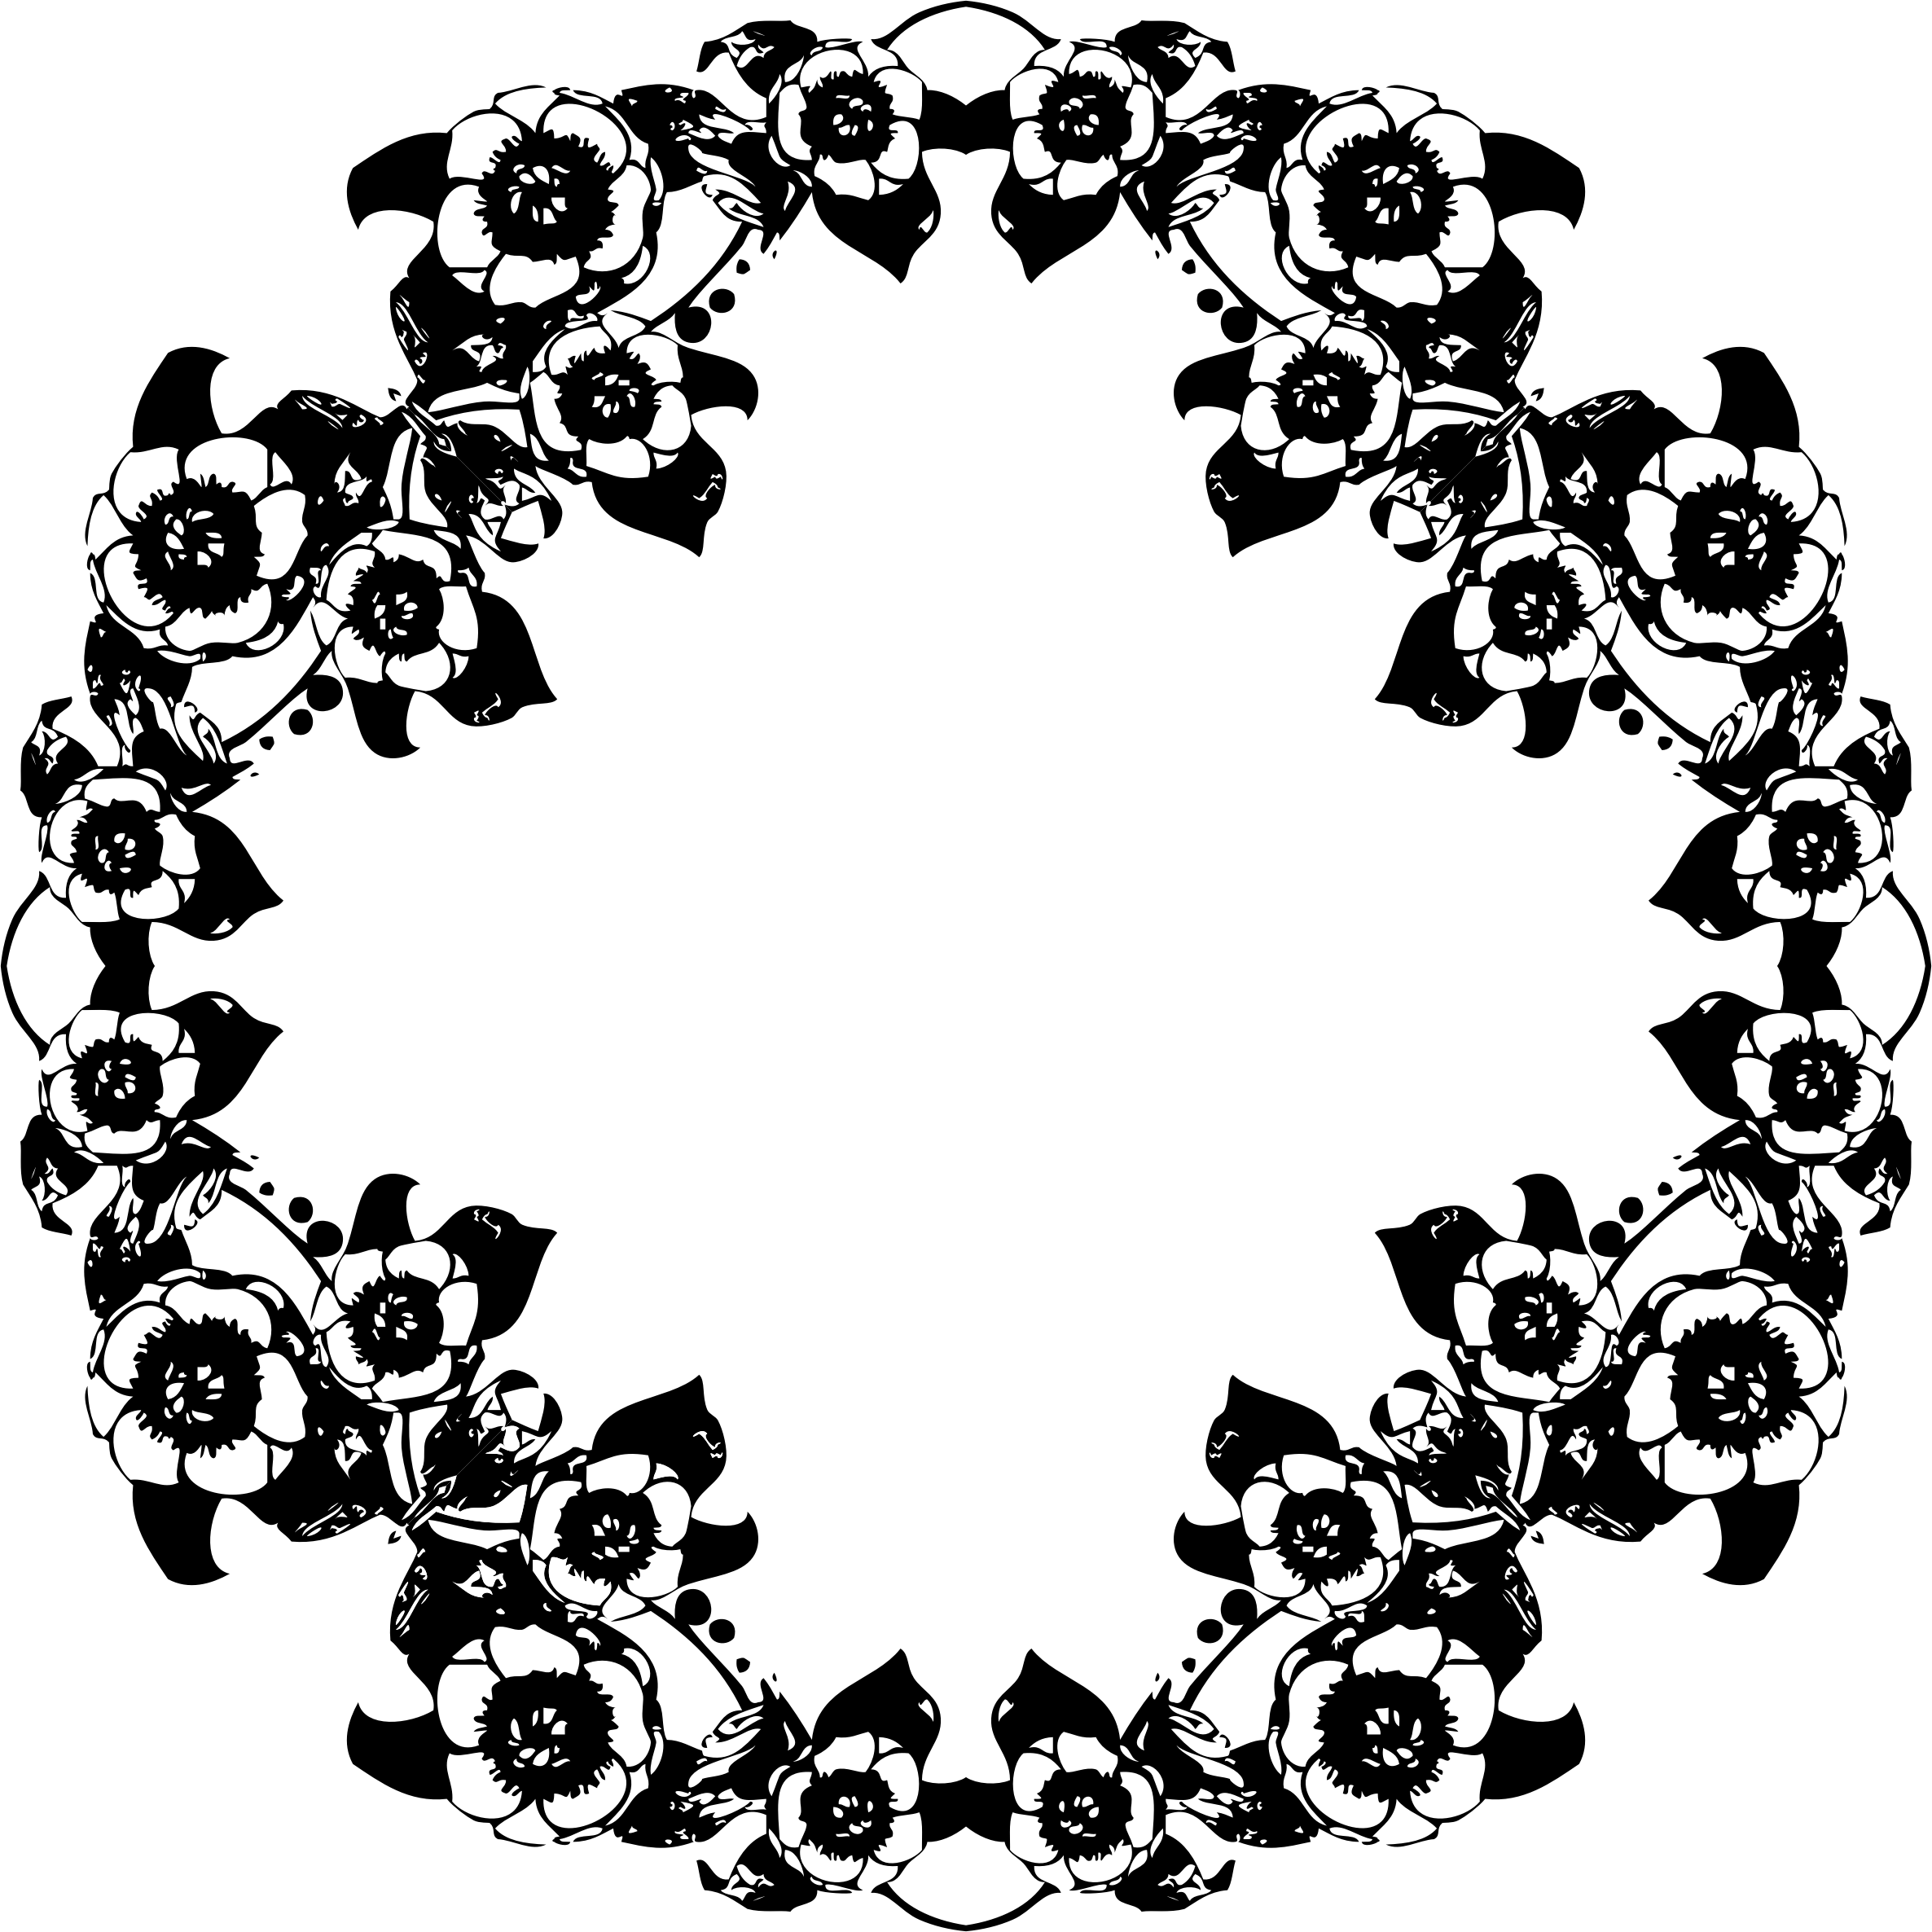 Black and white design png